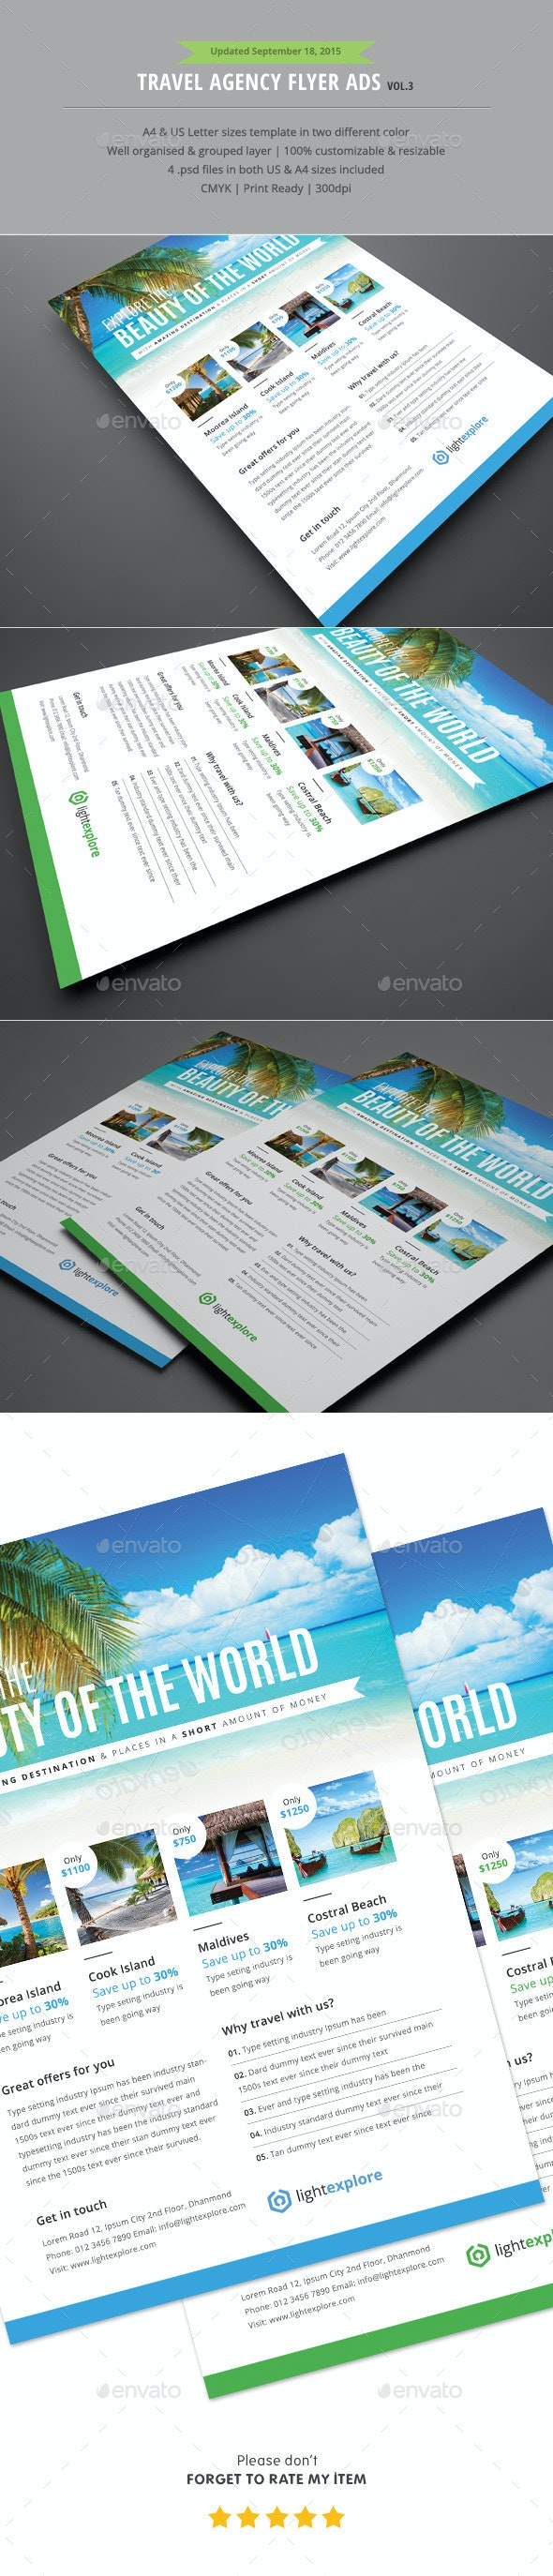 Travel Agency Flyer Ads Vol.3 - Holidays Events